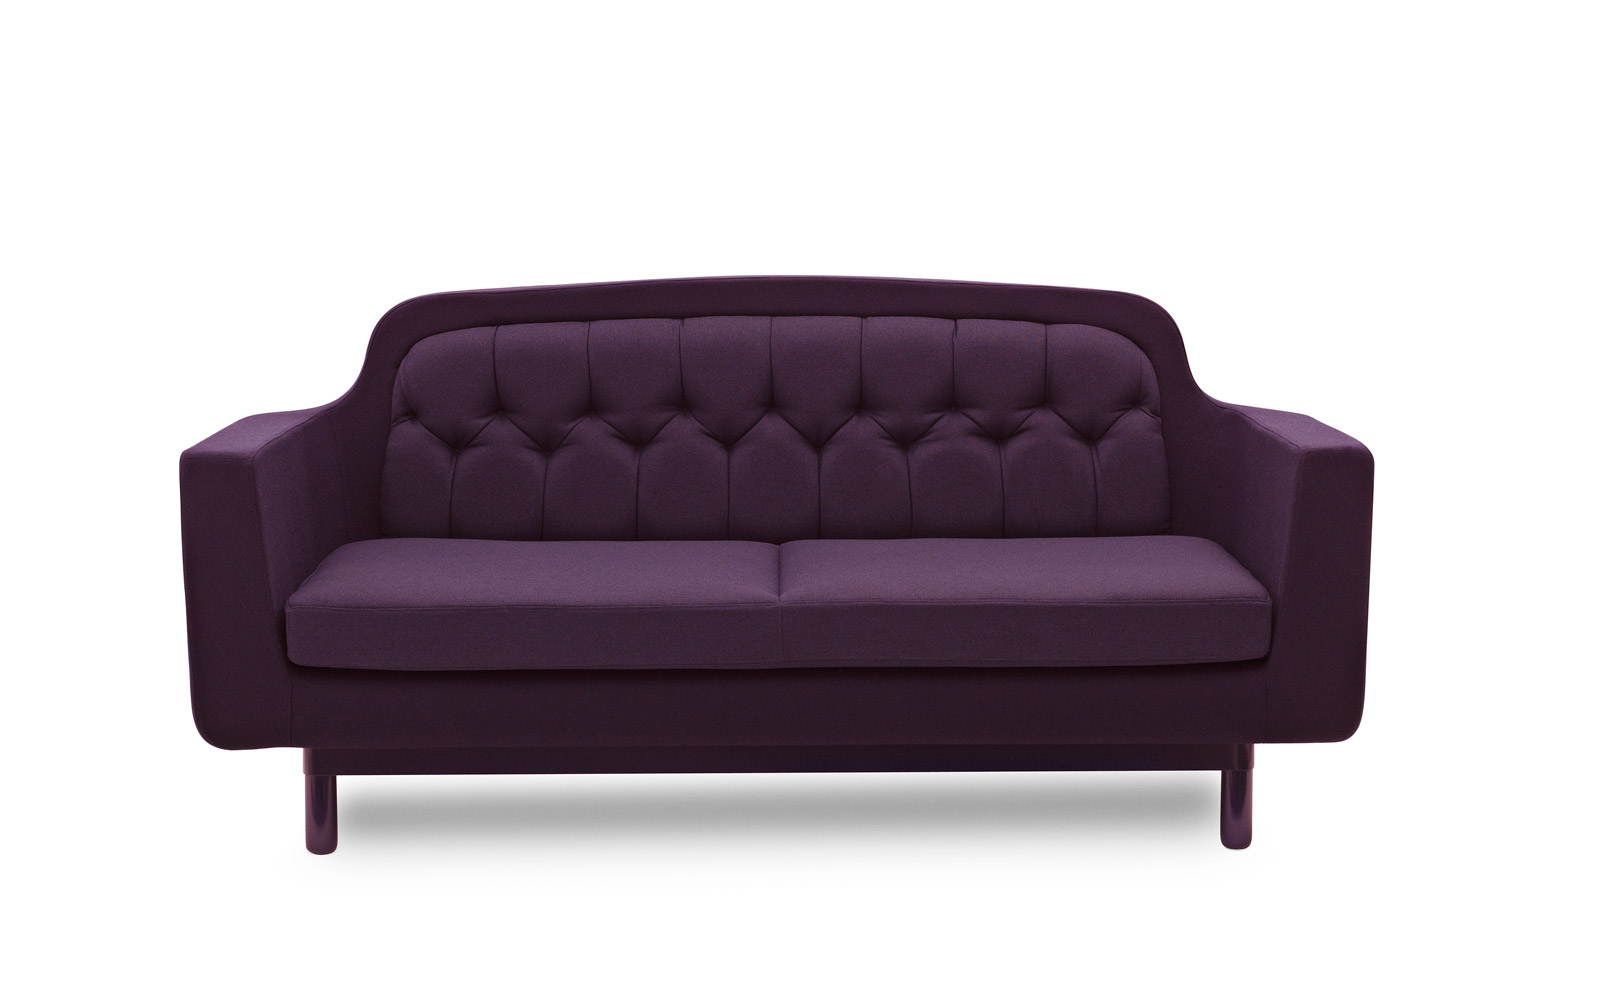 Purple Velvet Sectional Sofa | Velvet Couches For Sale | Purple Sofa